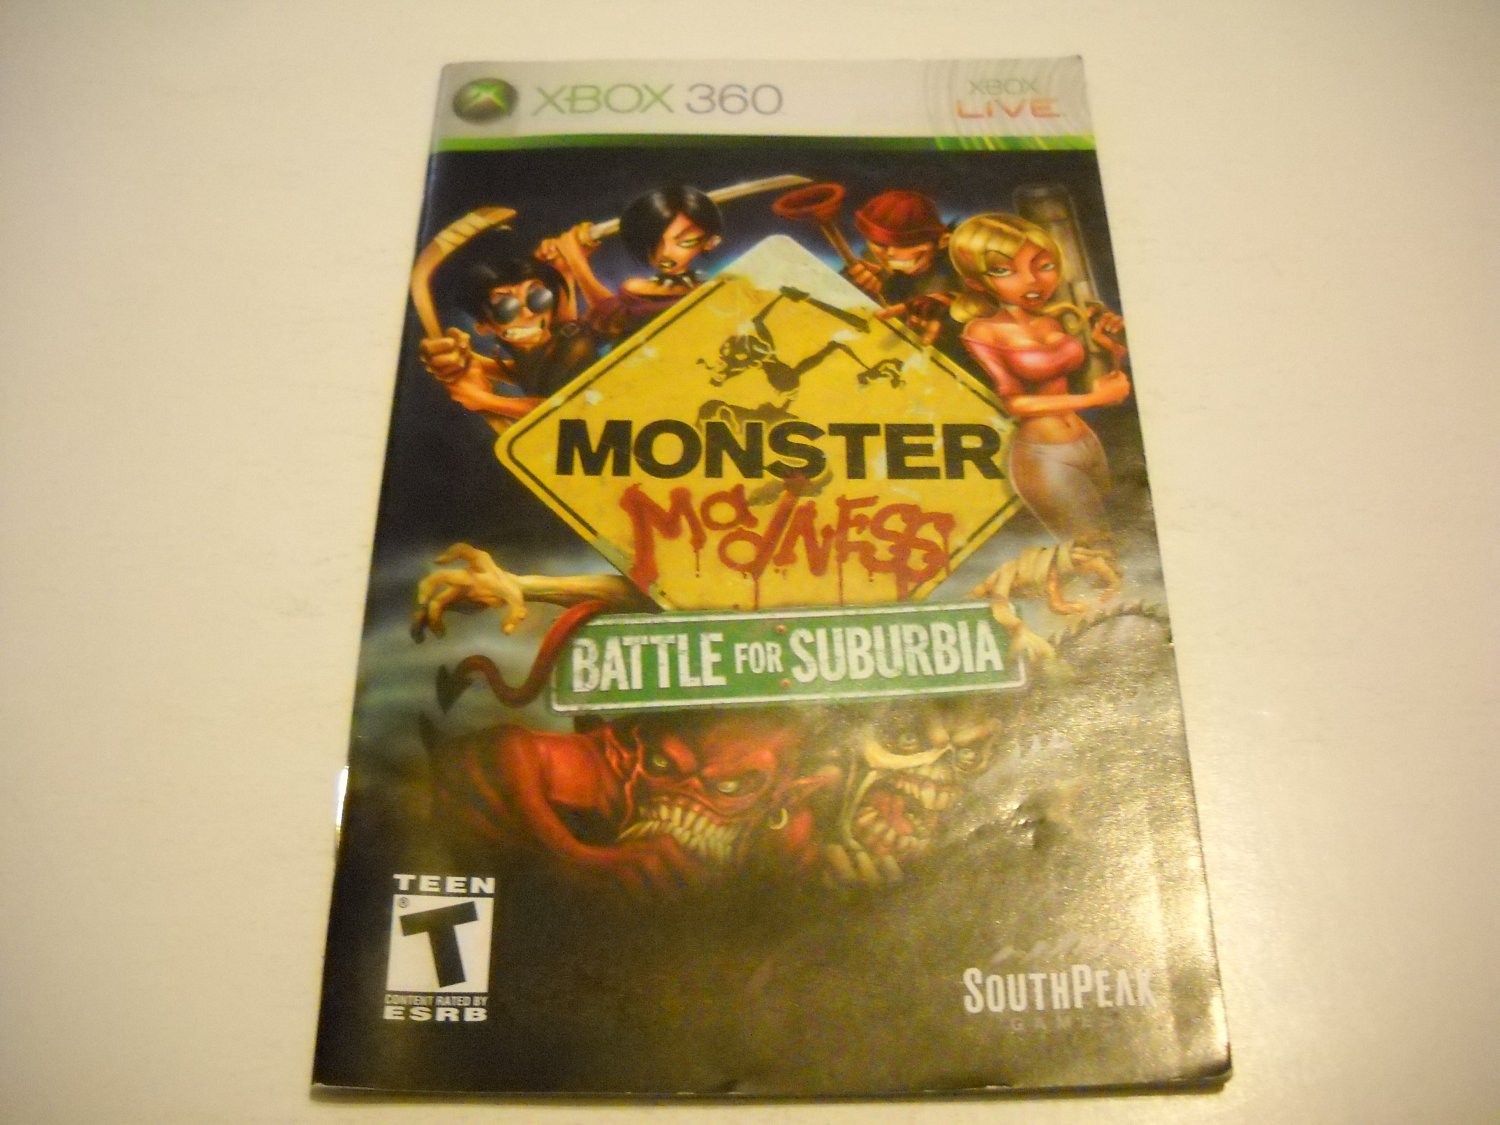 Manual ONLY ~  for Monster Madness Battle for Suburbia   - Xbox 360 Instruction Booklet